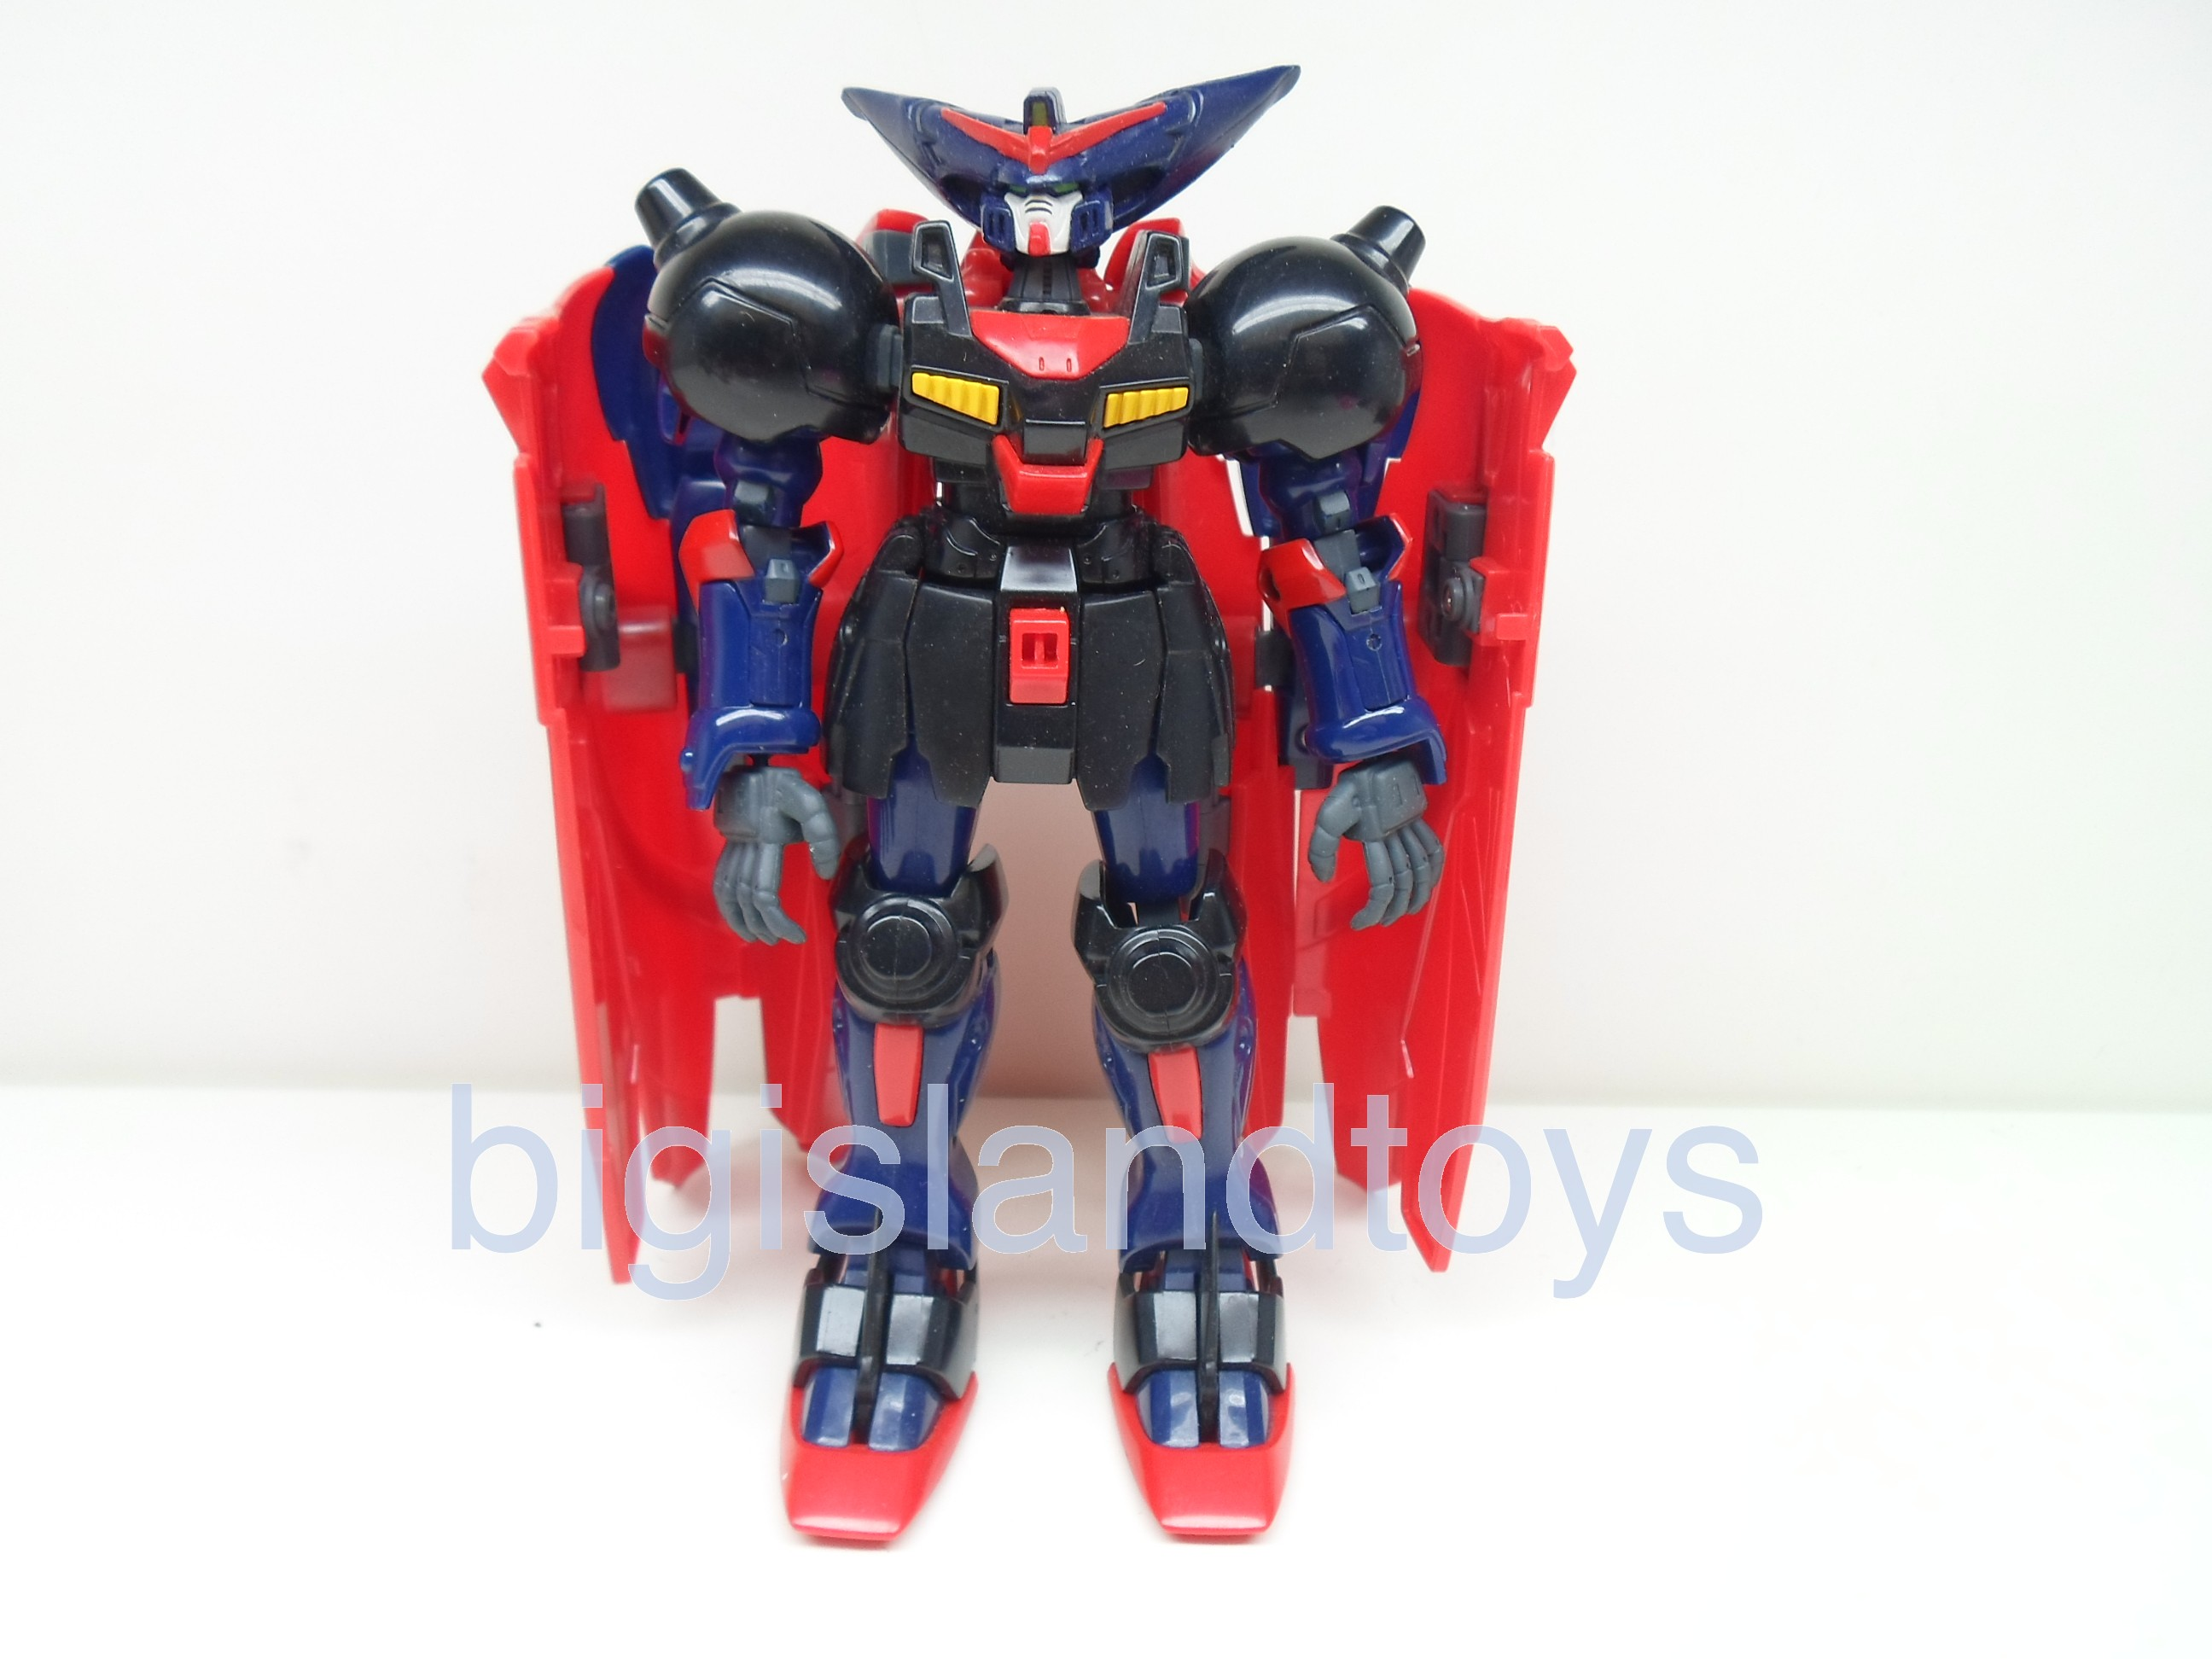 Gundam   G 7.5 inch Mobile Suit Fighter MSIA    Master Gundam 7.5 inch Action Figure